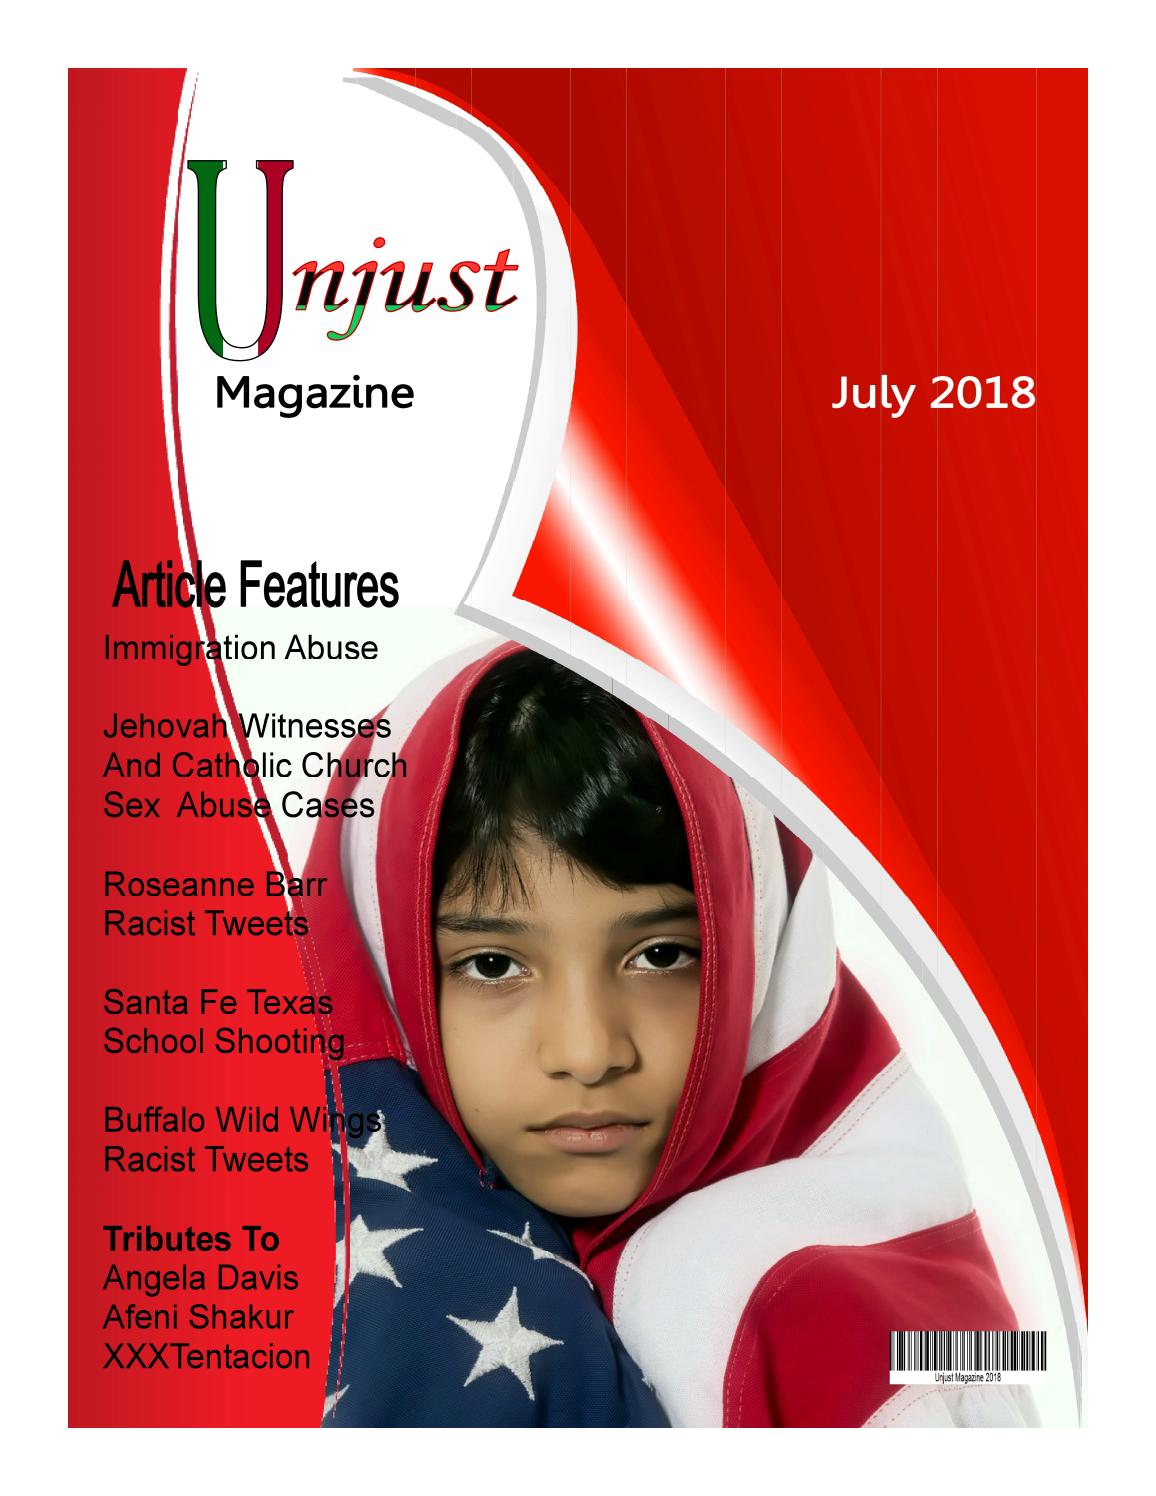 Unjust Magazine (Exposing Child Sex Abuse In The Church) by